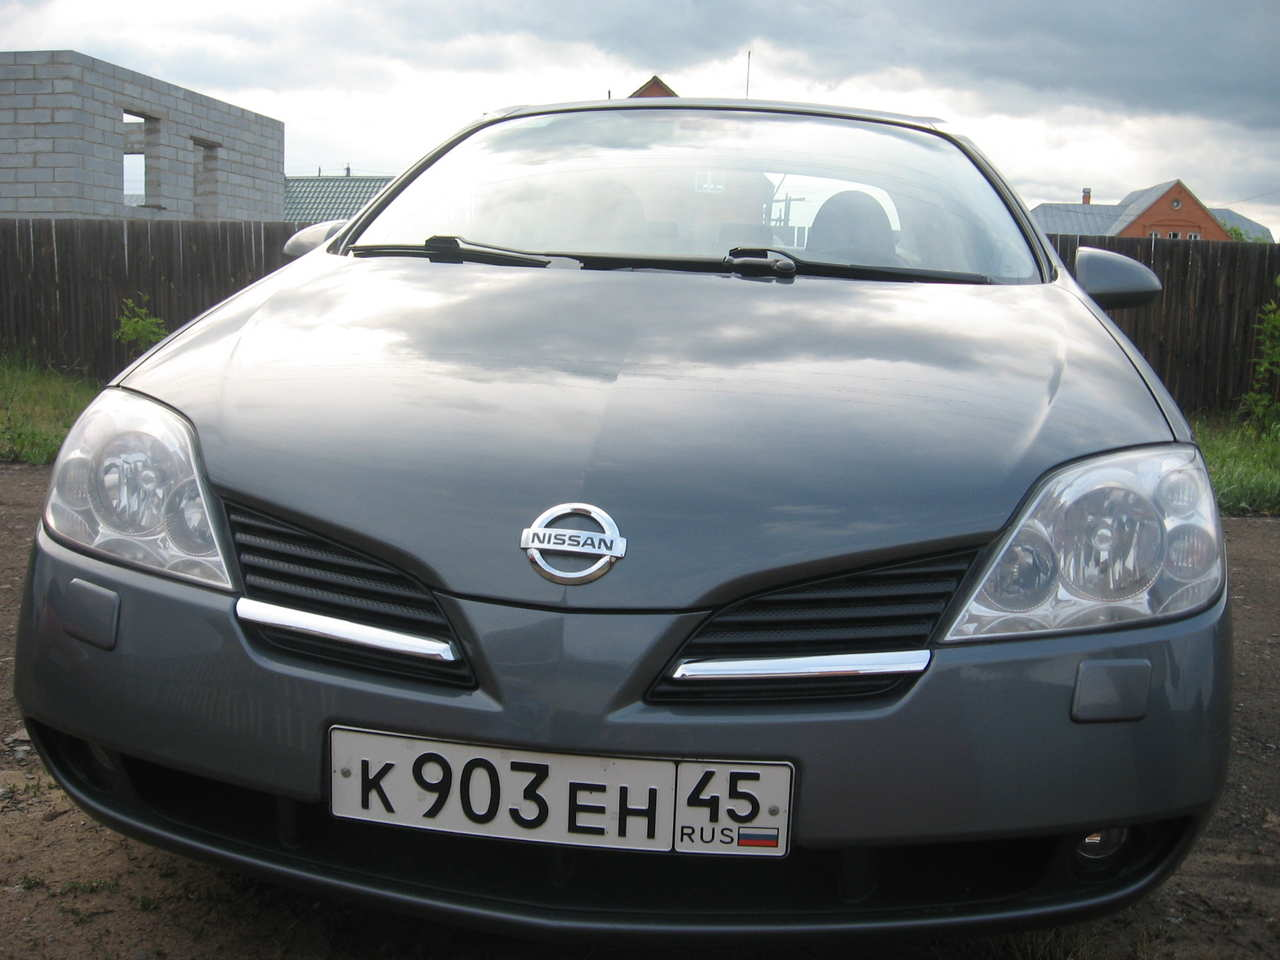 2005 nissan primera pics 1 8 gasoline ff automatic for sale. Black Bedroom Furniture Sets. Home Design Ideas